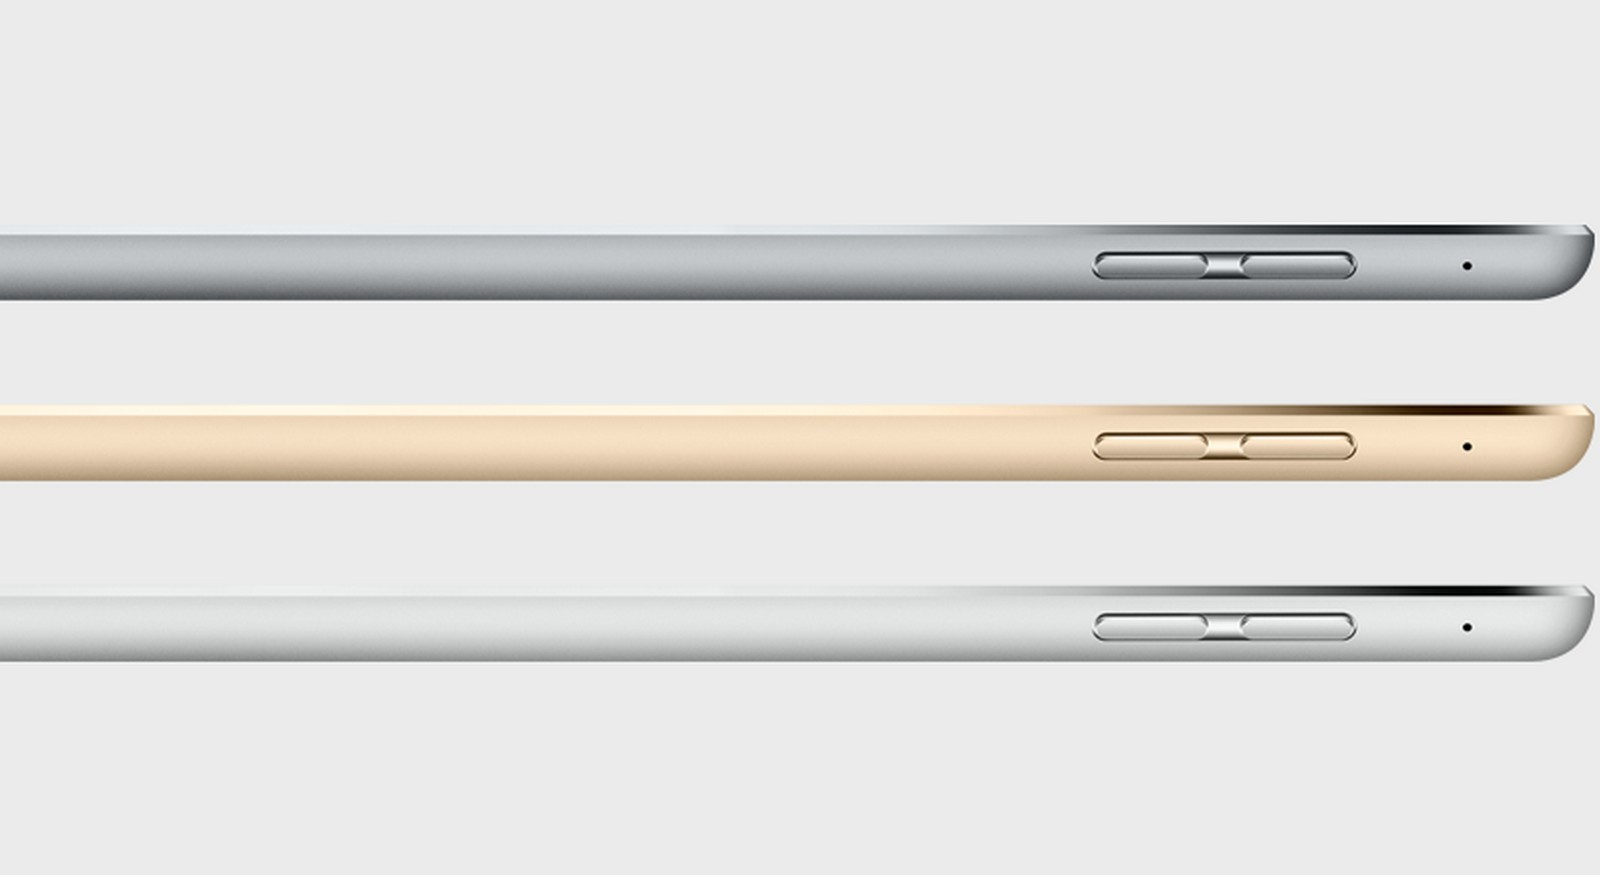 Apple iPad Pro all the official images 1 - Apple iPad Pro announced with Apple Pencil and a Smart Keyboard